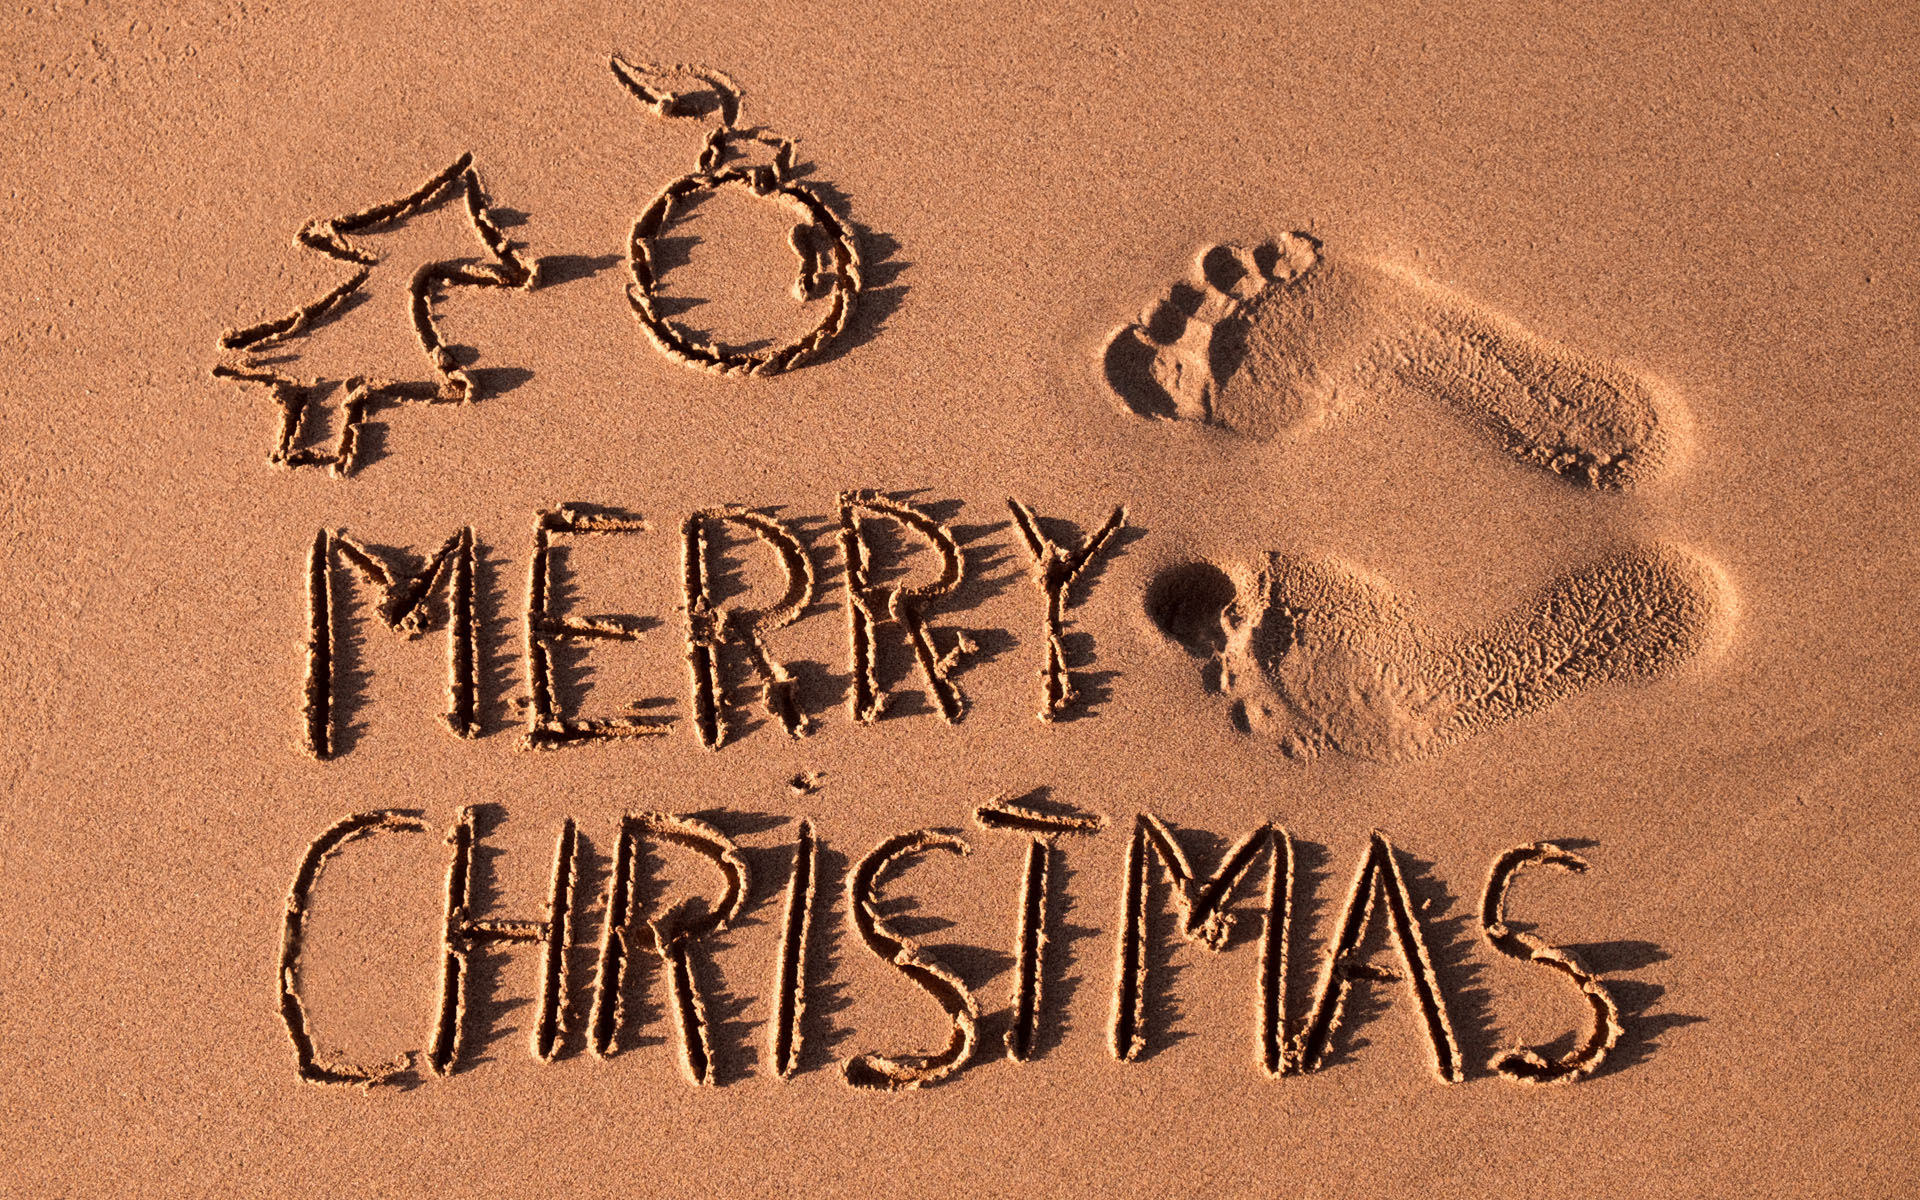 Merry Christmas written on Sand